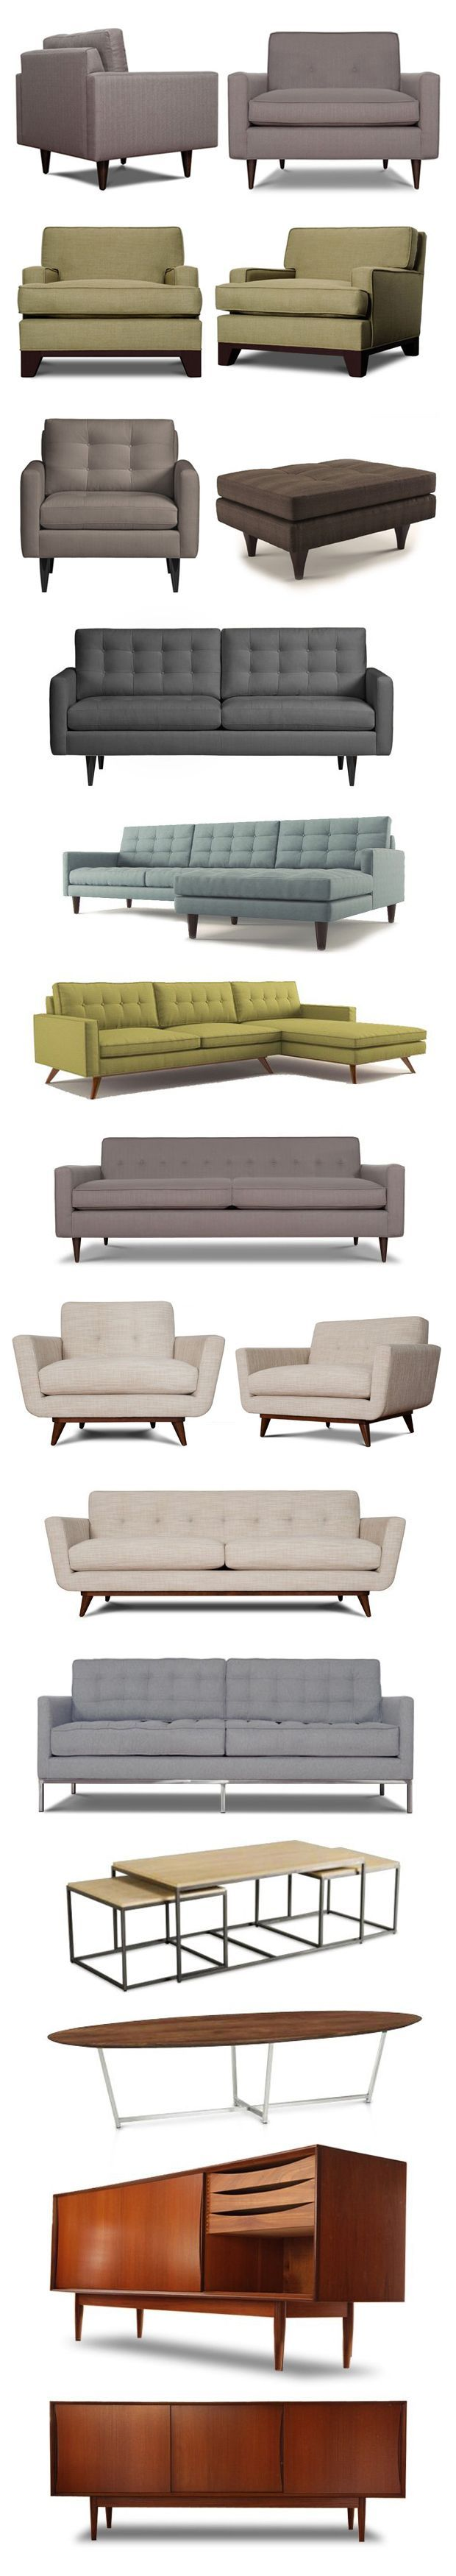 Mid century modern furniture. #sofas #wooden #woodwork #wood #vintage #decor…